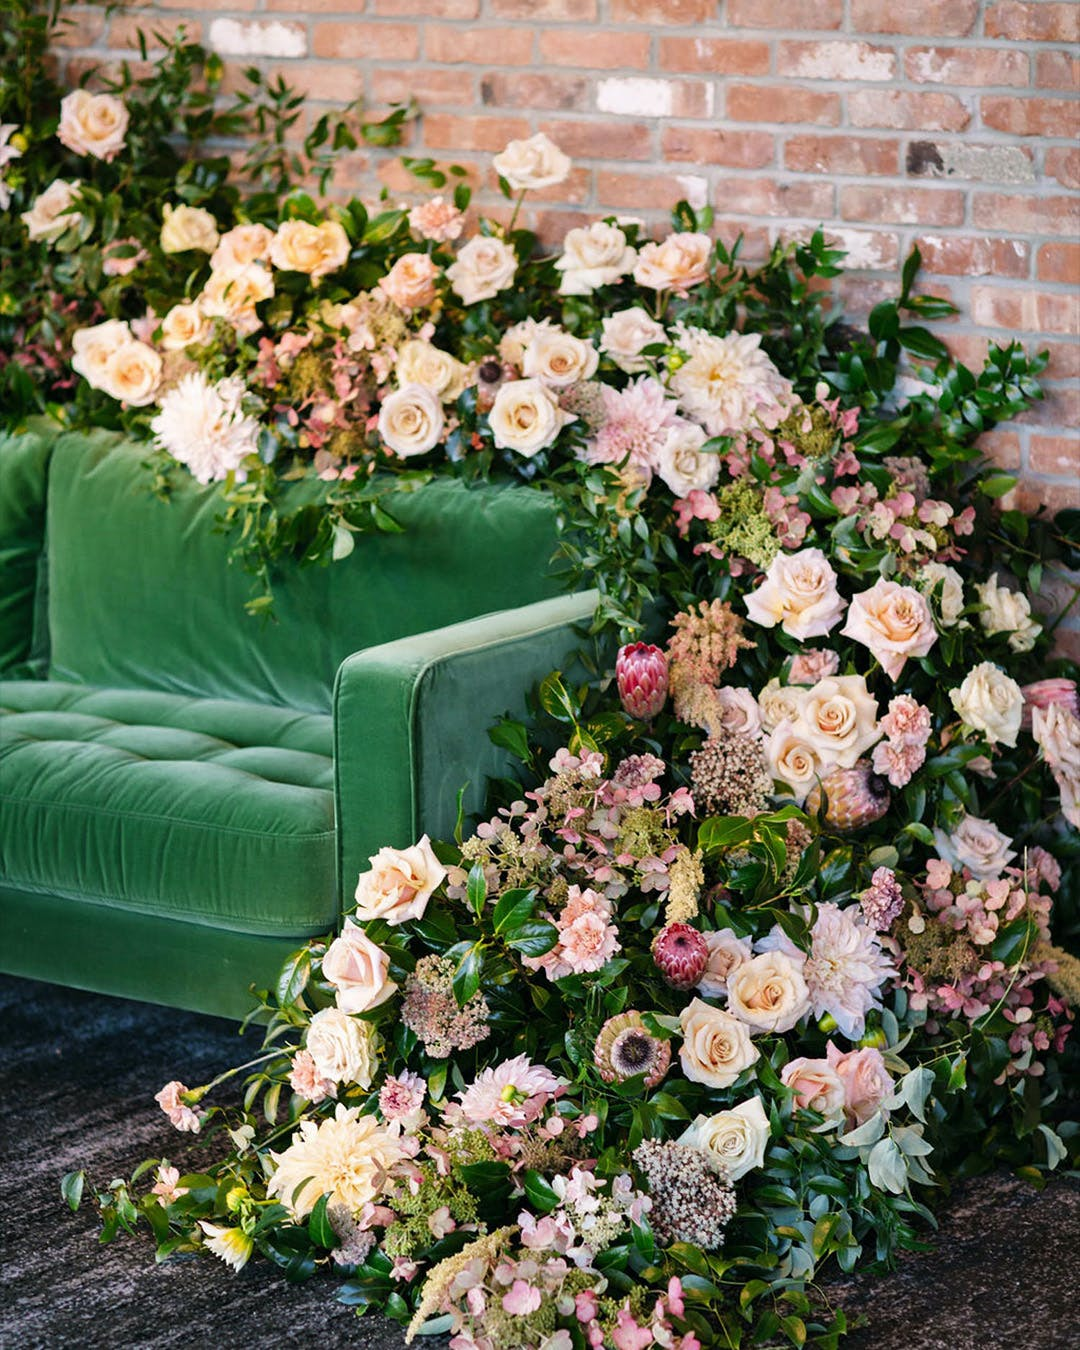 Green velvet sofa with cascading roses for engagement party in the spring | PartySlate